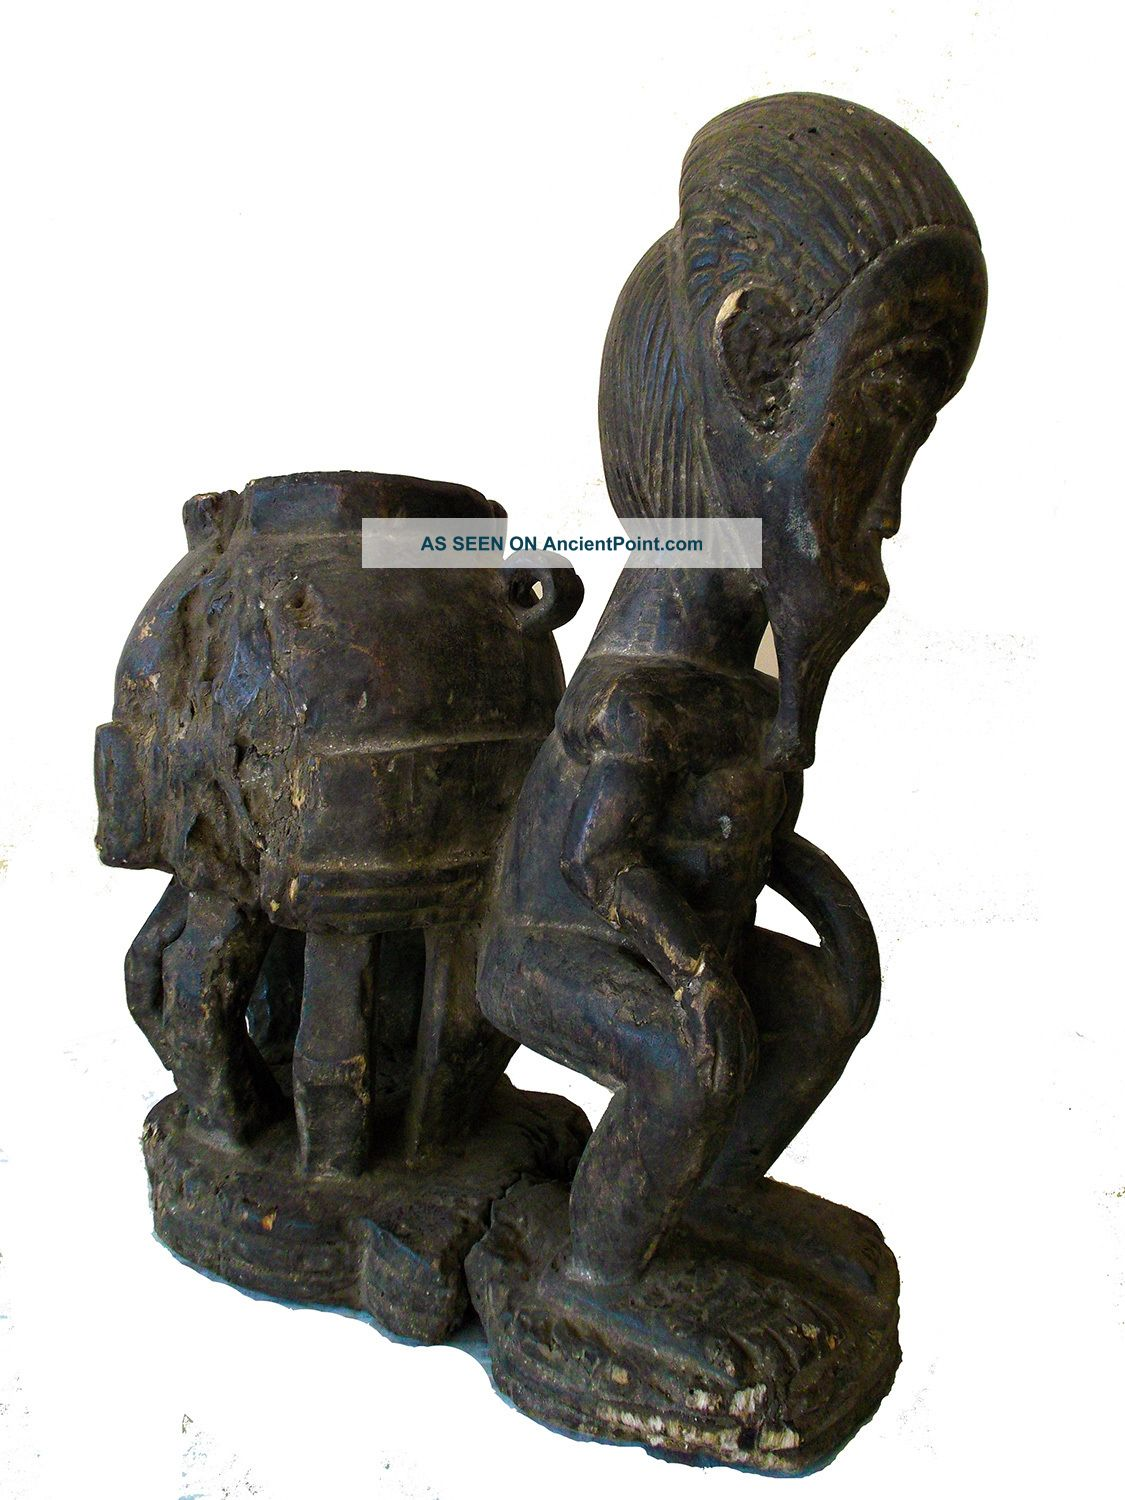 Chokwe Tribe Seated Ancestral Figure Congo Zaire Ritual African Statue Sculptures & Statues photo